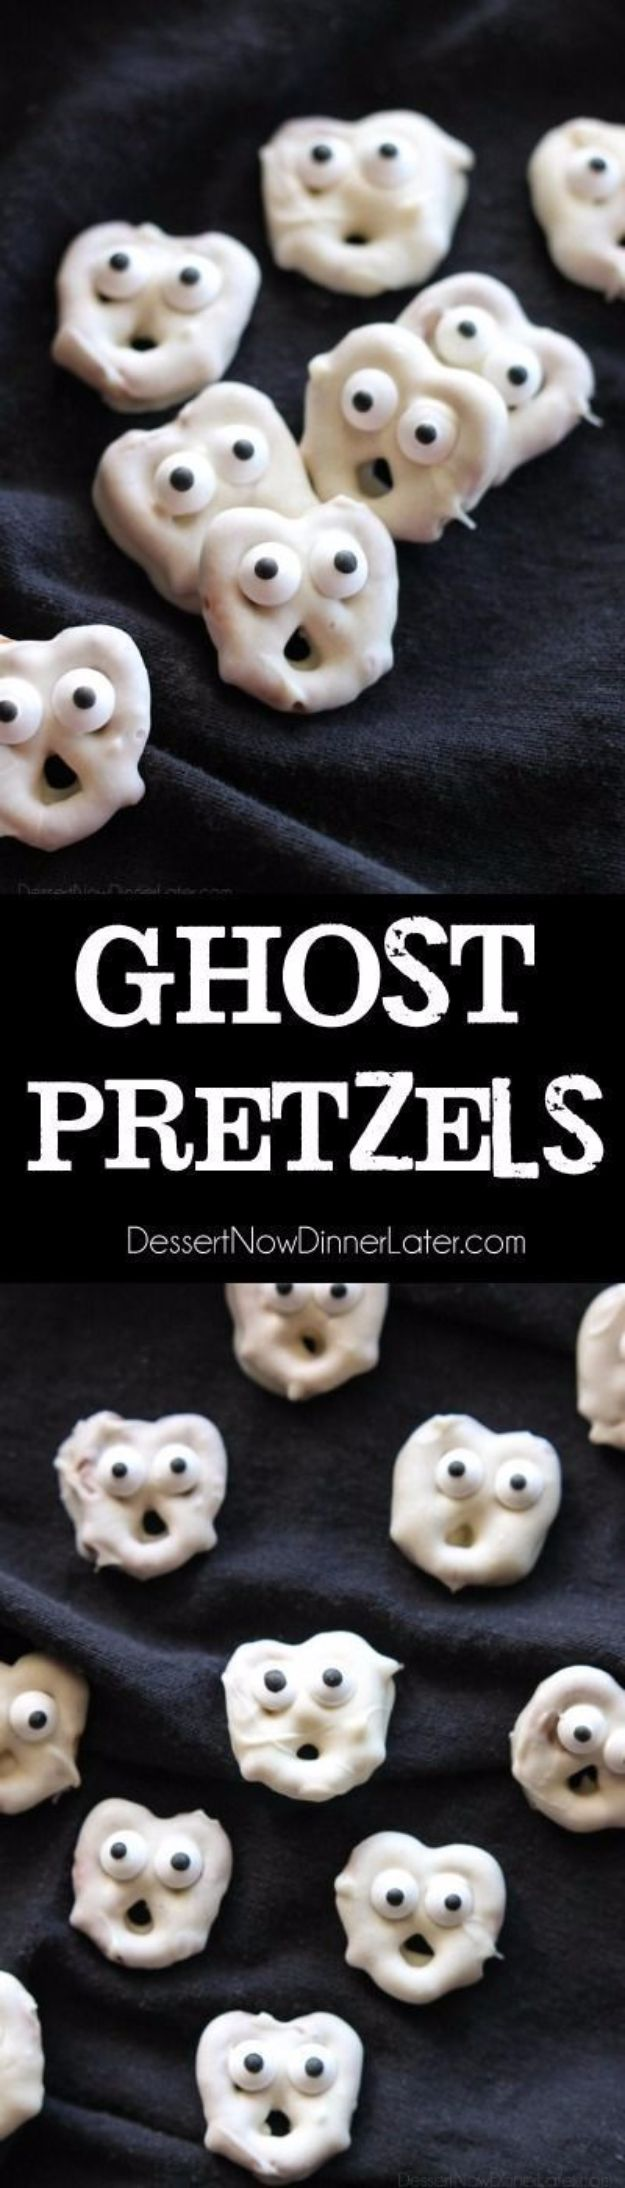 Best Halloween Party Snacks - Ghost Pretzels - Healthy Ideas for Kids for School, Teens and Adults - Easy and Quick Recipes and Idea for Dips, Chips, Spooky Cookies and Treats - Appetizers and Finger Foods Made With Vegetables, No Candy, Cheap Food, Scary DIY Party Foods With Step by Step Tutorials #halloween #halloweenrecipes #halloweenparty